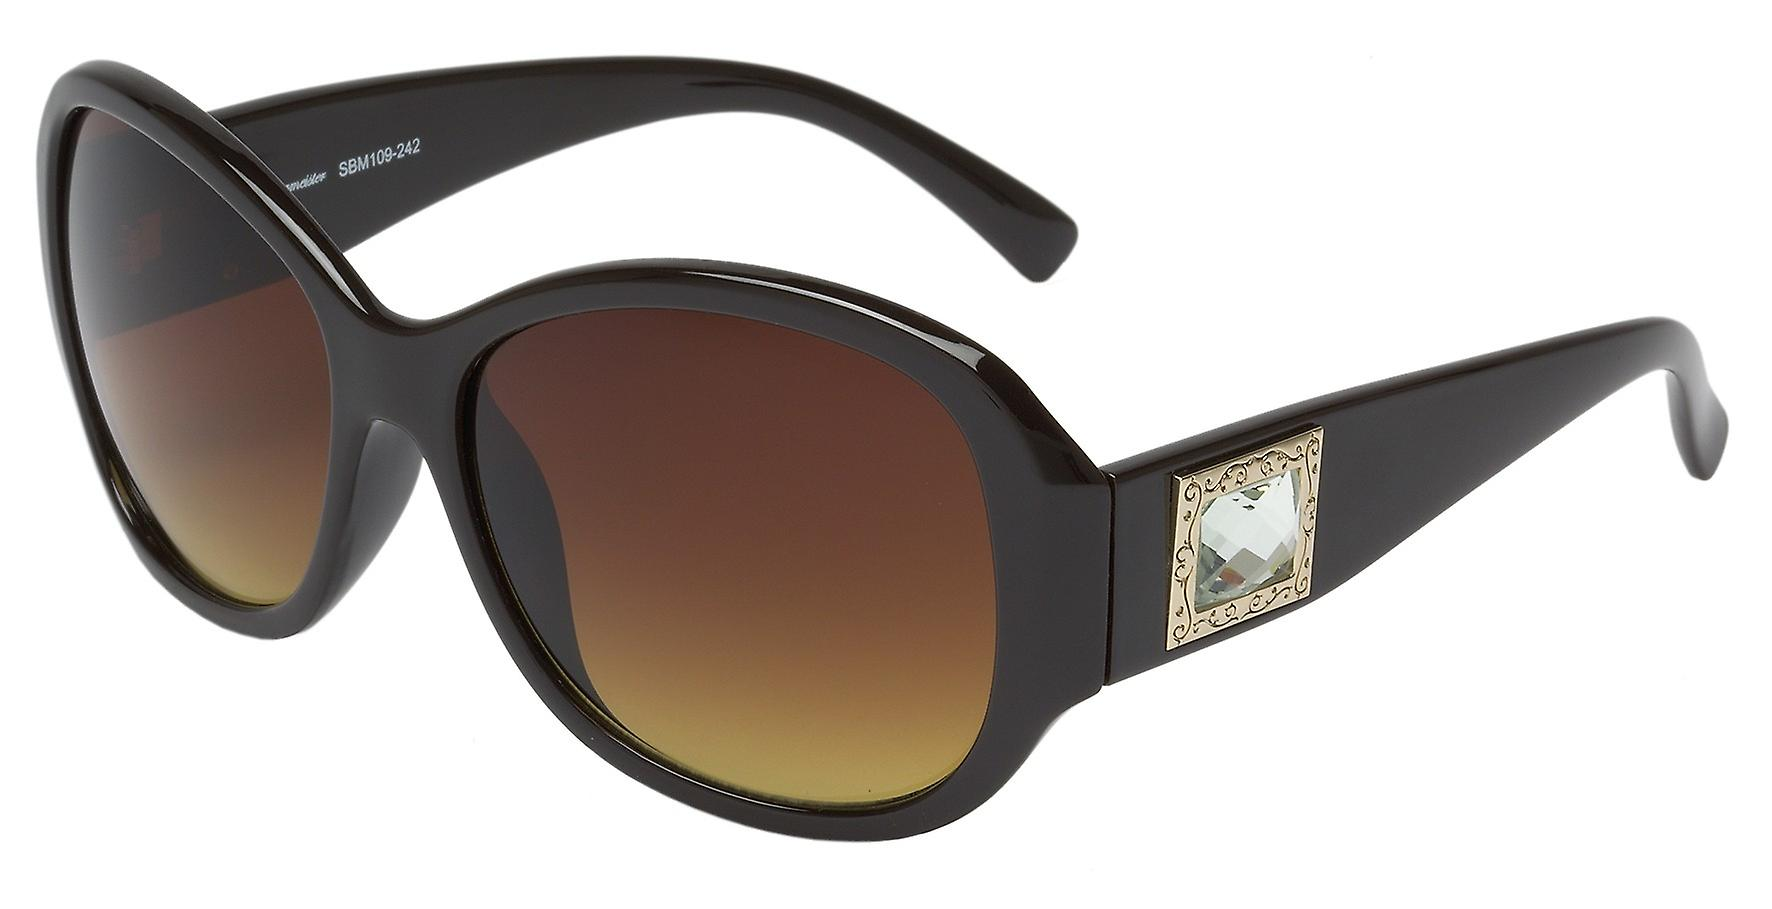 Burgmeister Ladies sunglasses Barcelona, SBM109-242